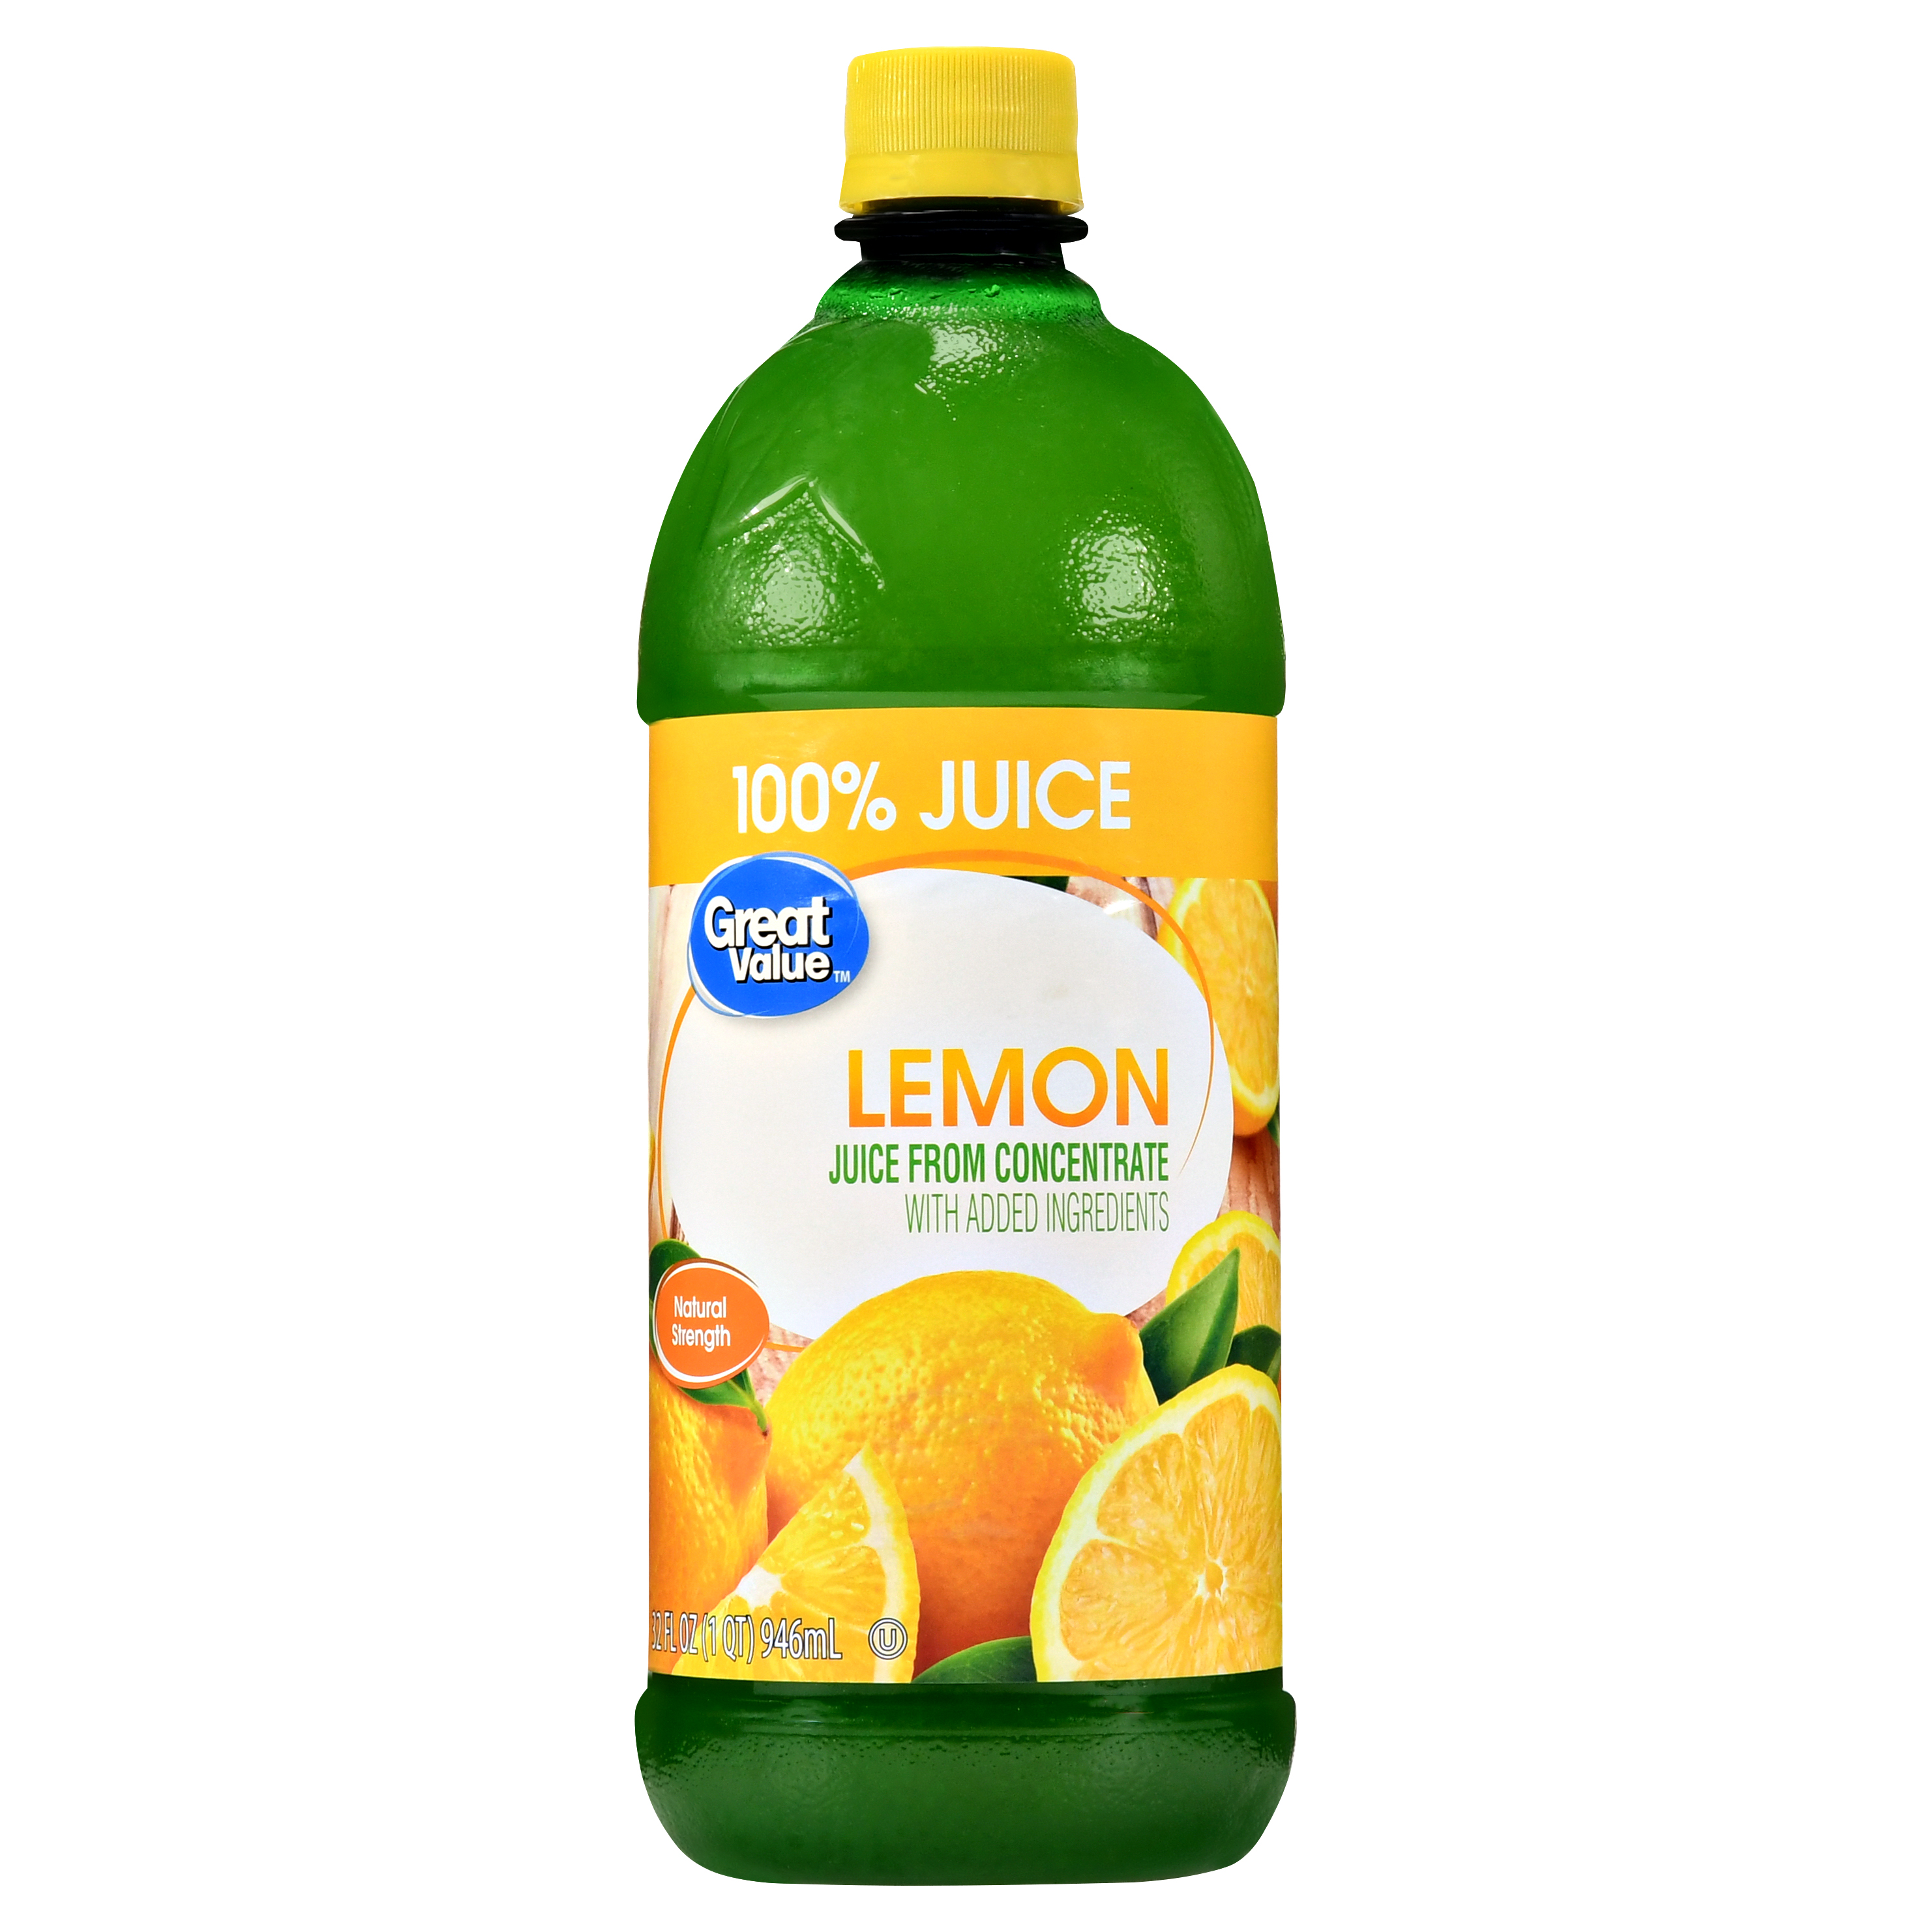 (9 Pack) Great Value 100% Juice, Lemon, 32 Fl Oz, 1 Count